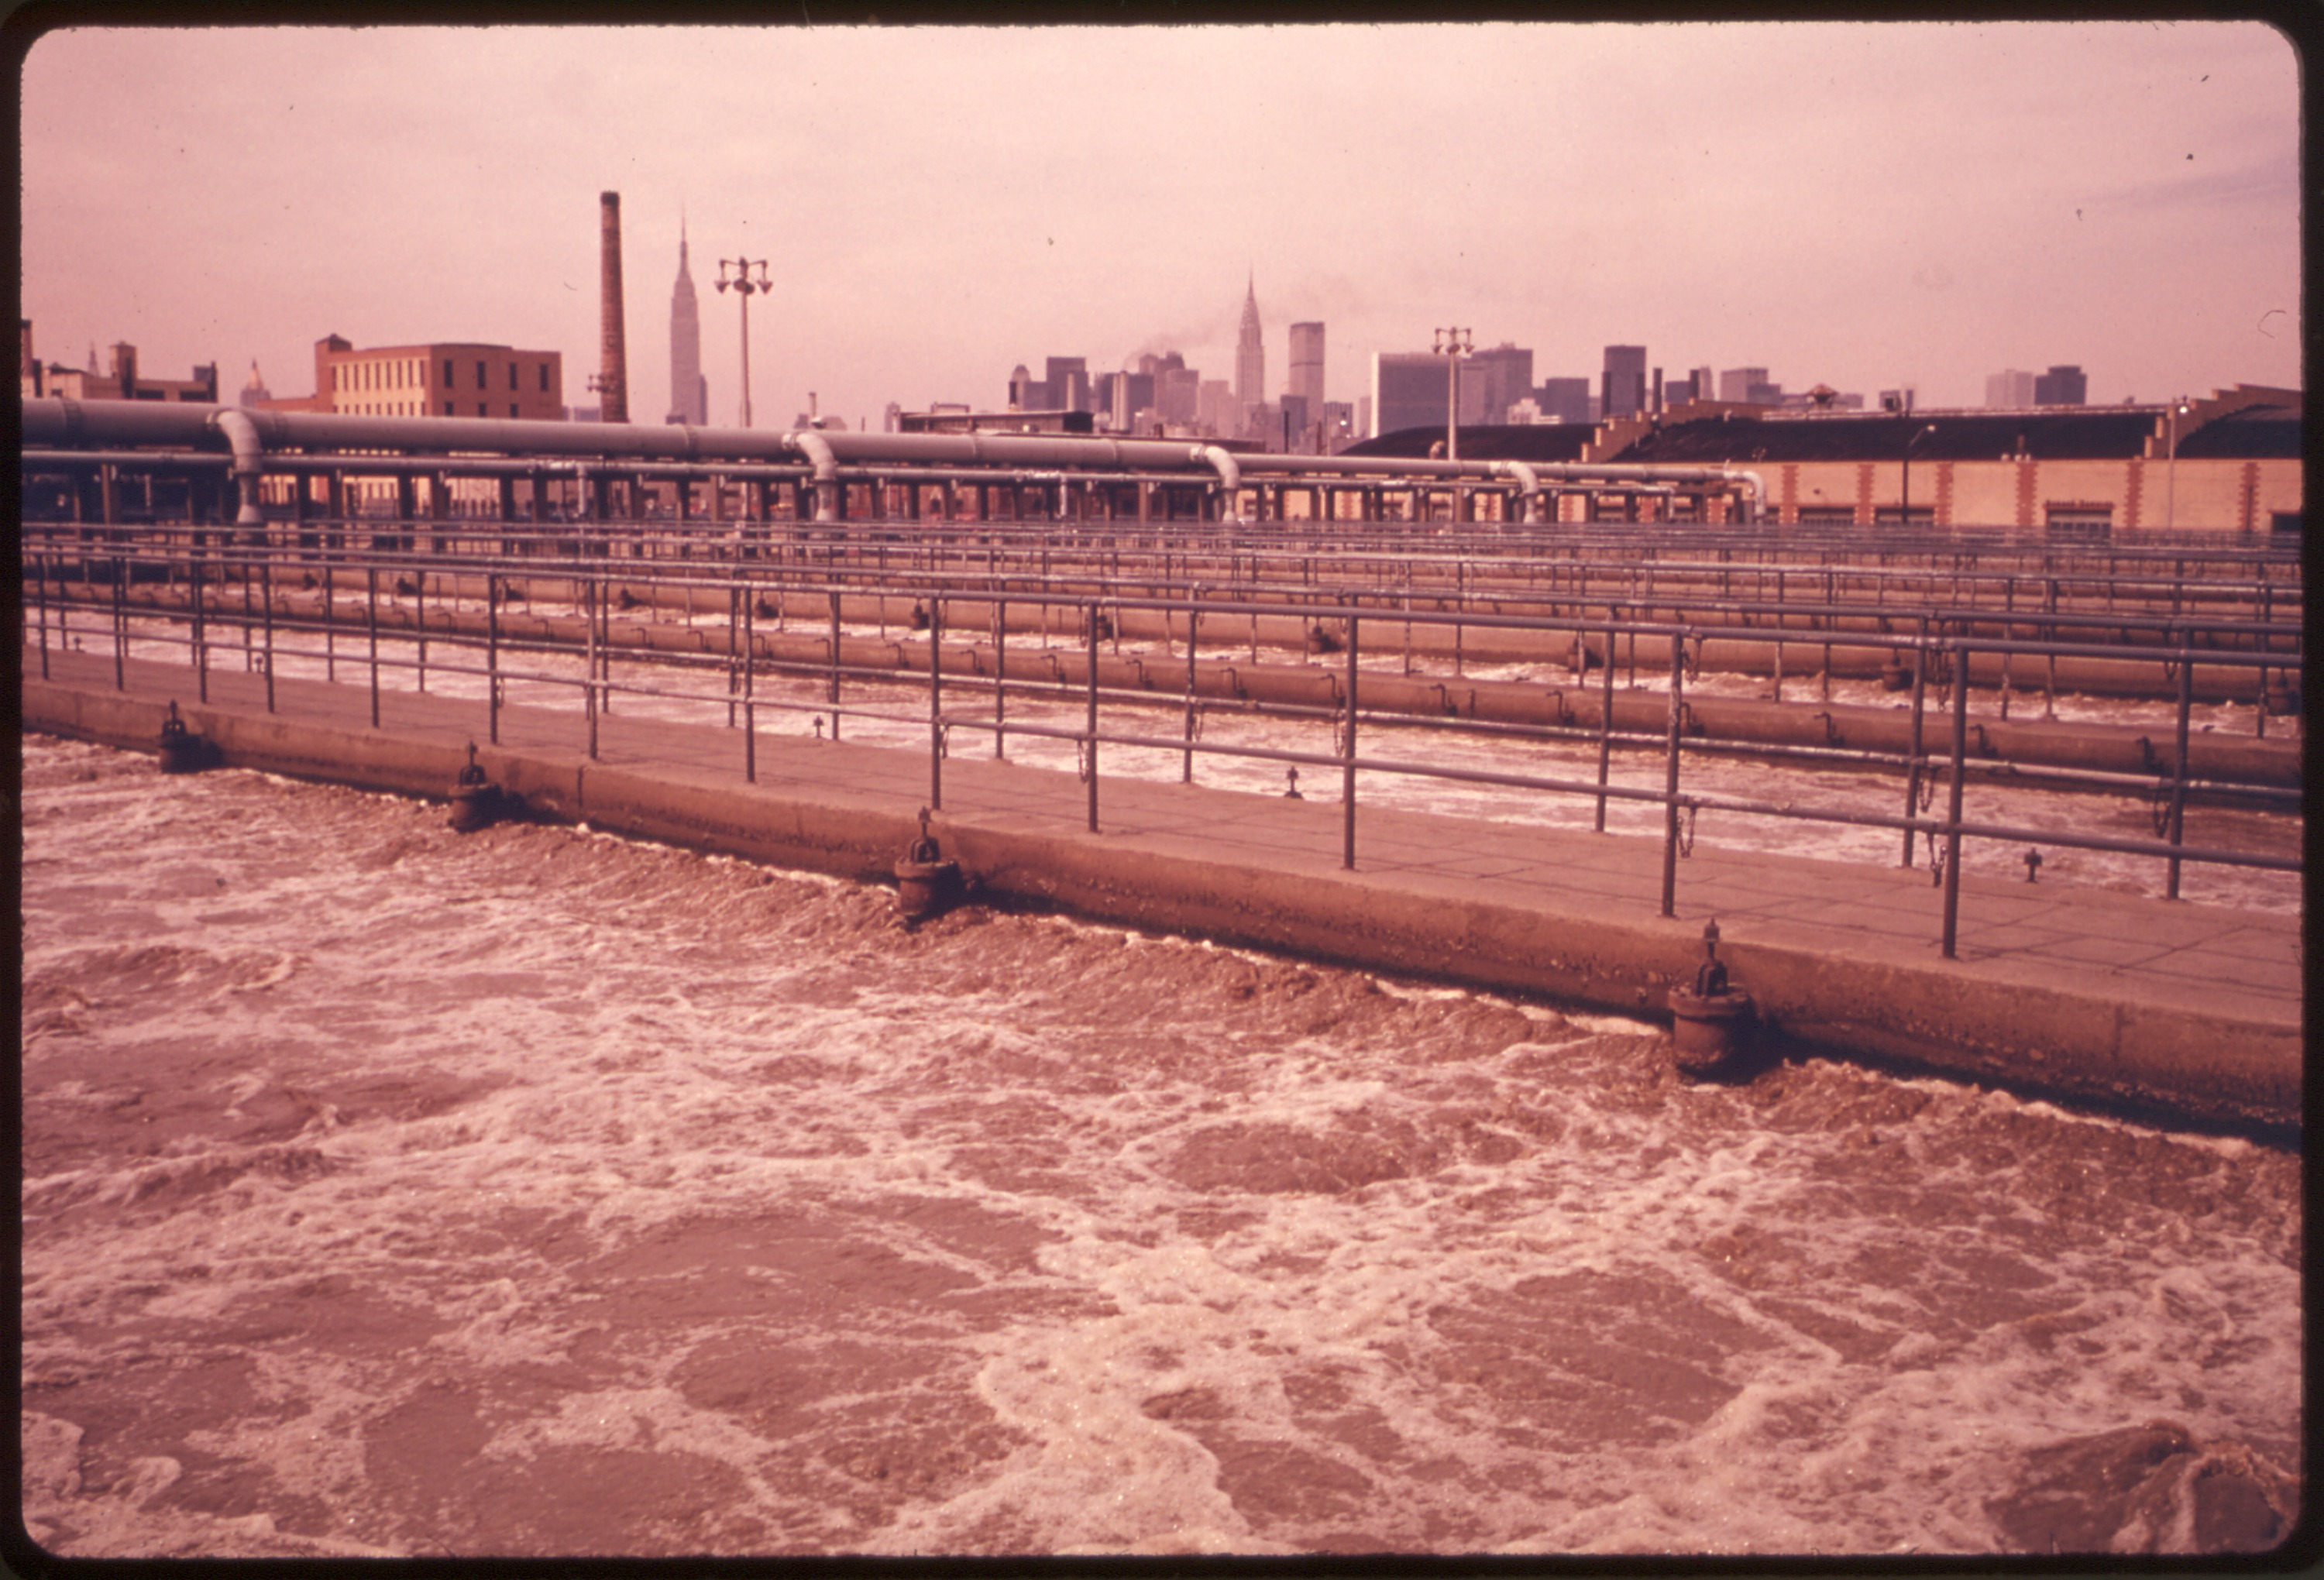 File:AERATION TANKS FOR SECONDARY TREATMENT AT THE NEWTOWN CREEK SEWAGE TREATMENT PLANT IN BROOKLYN